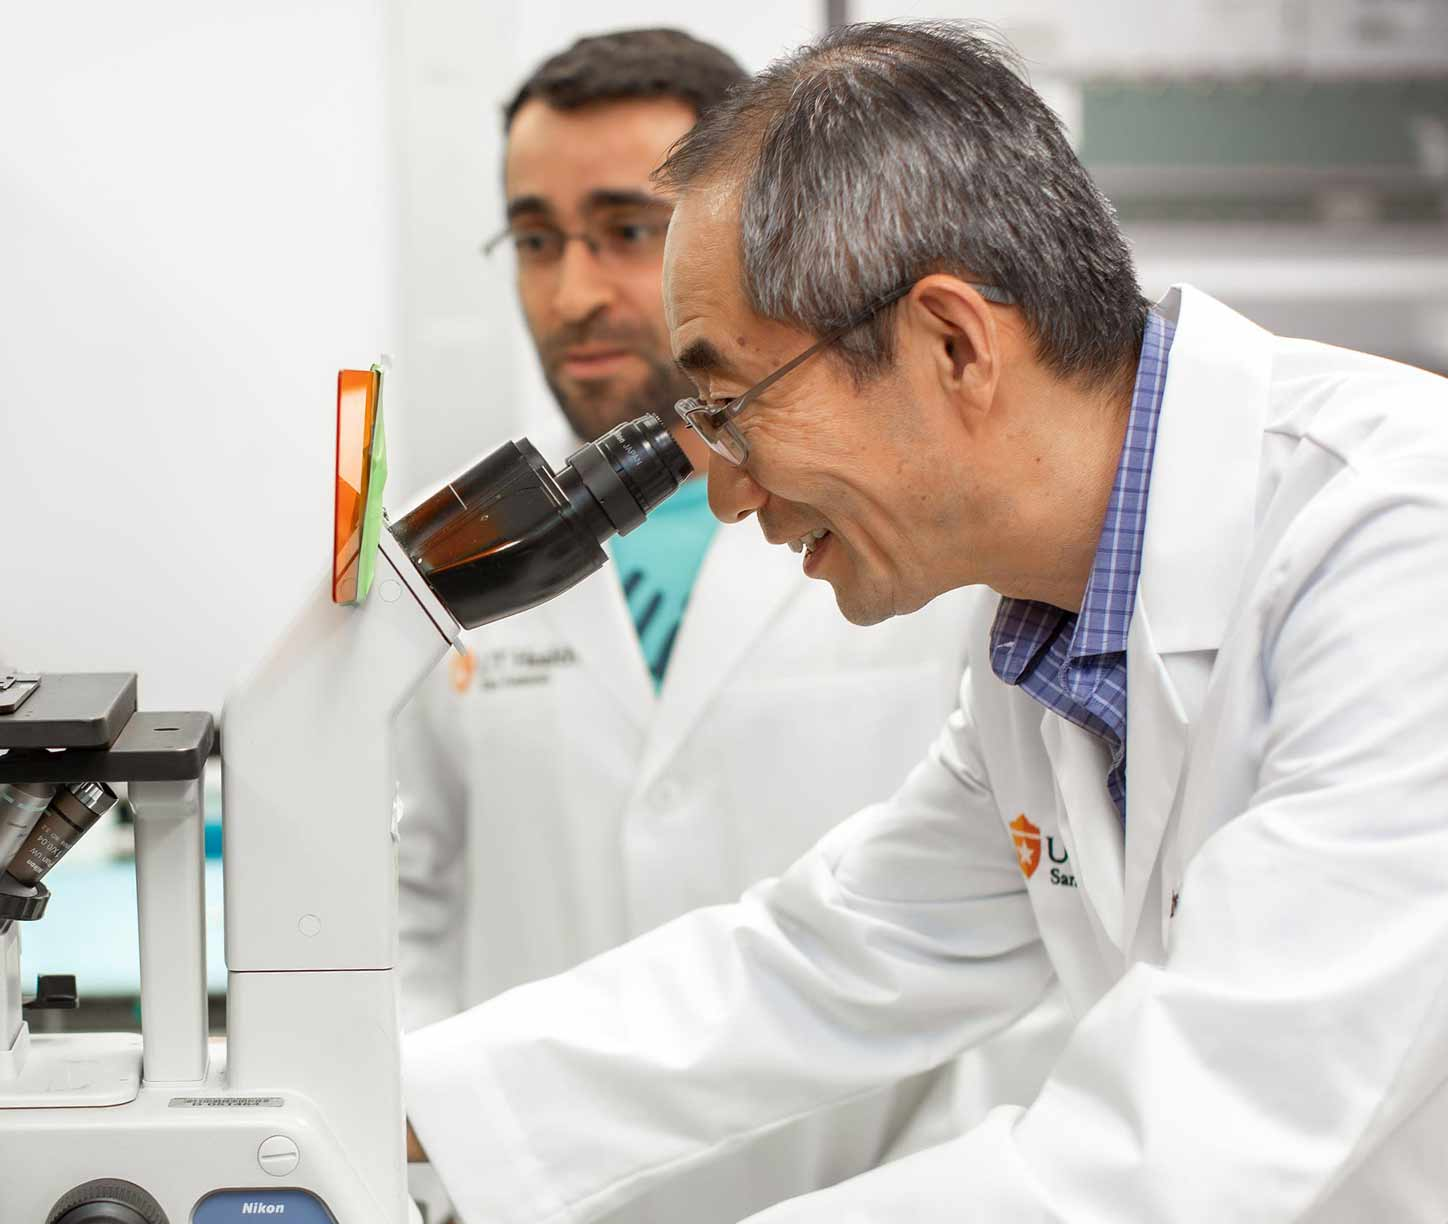 researchers at UT Health San Antonio MD Anderson Cancer Center